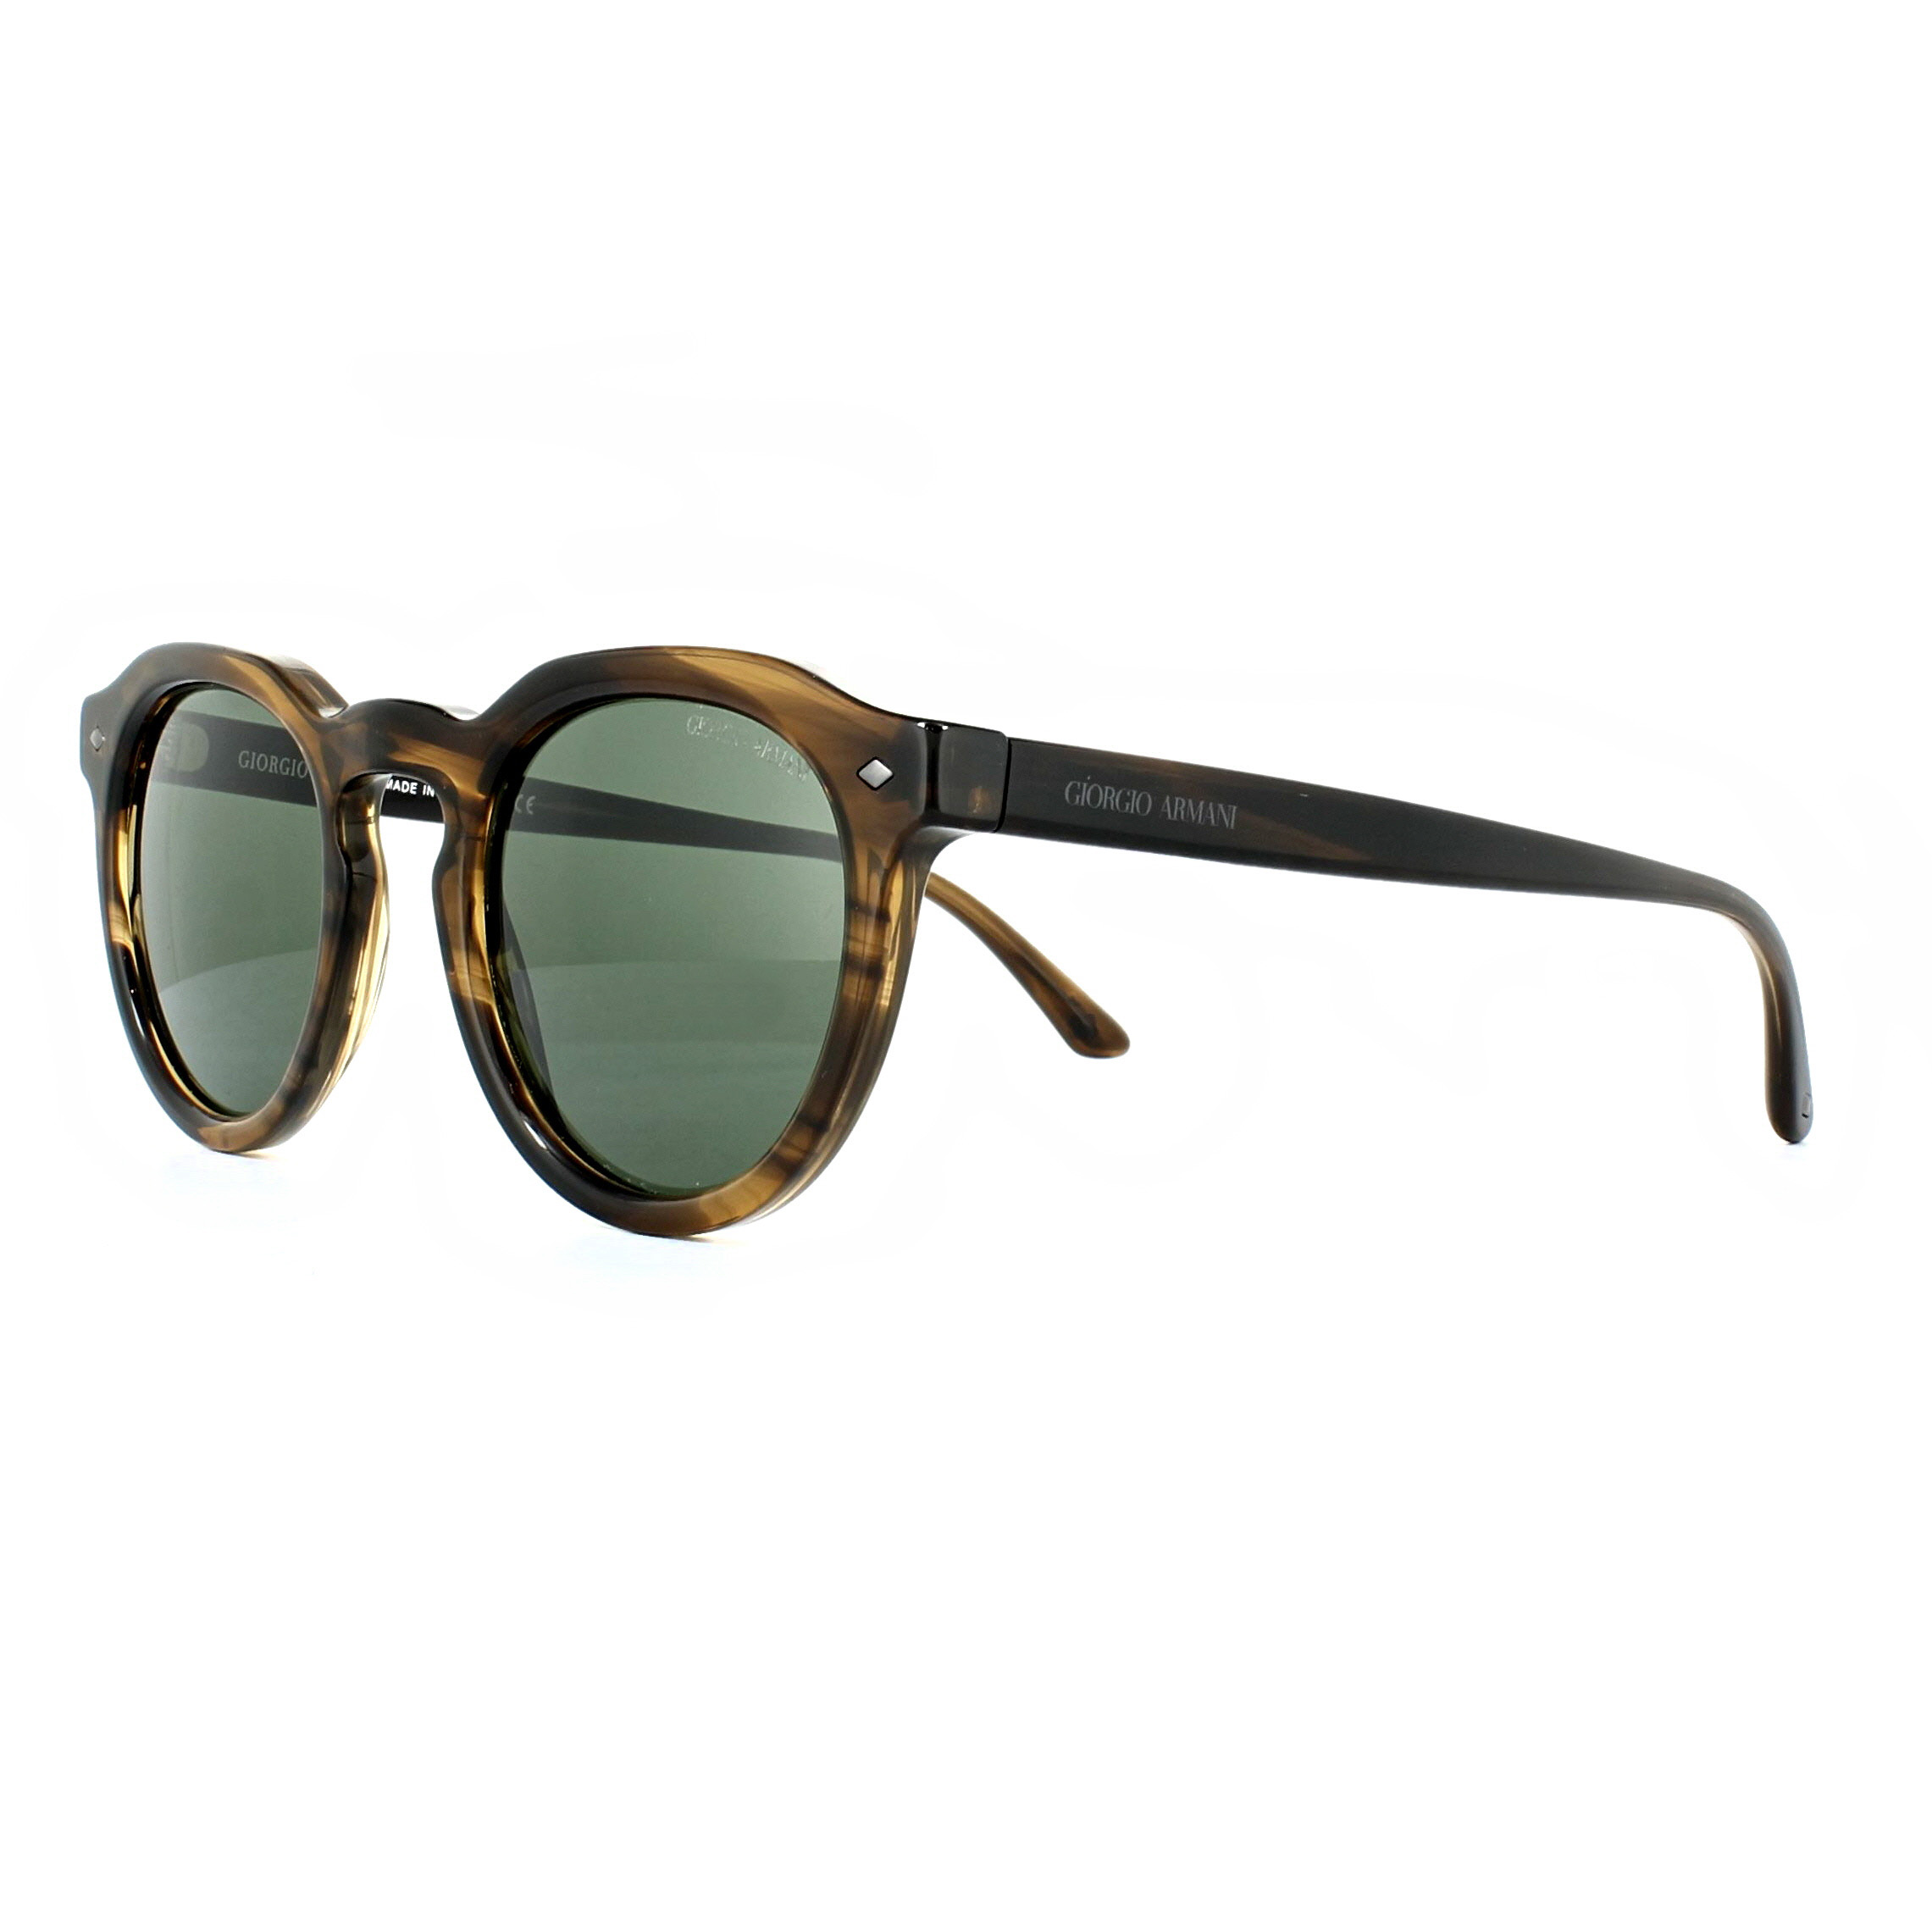 bd4bfb44 Details about Giorgio Armani Sunglasses AR8093 559431 Striped Brown Green